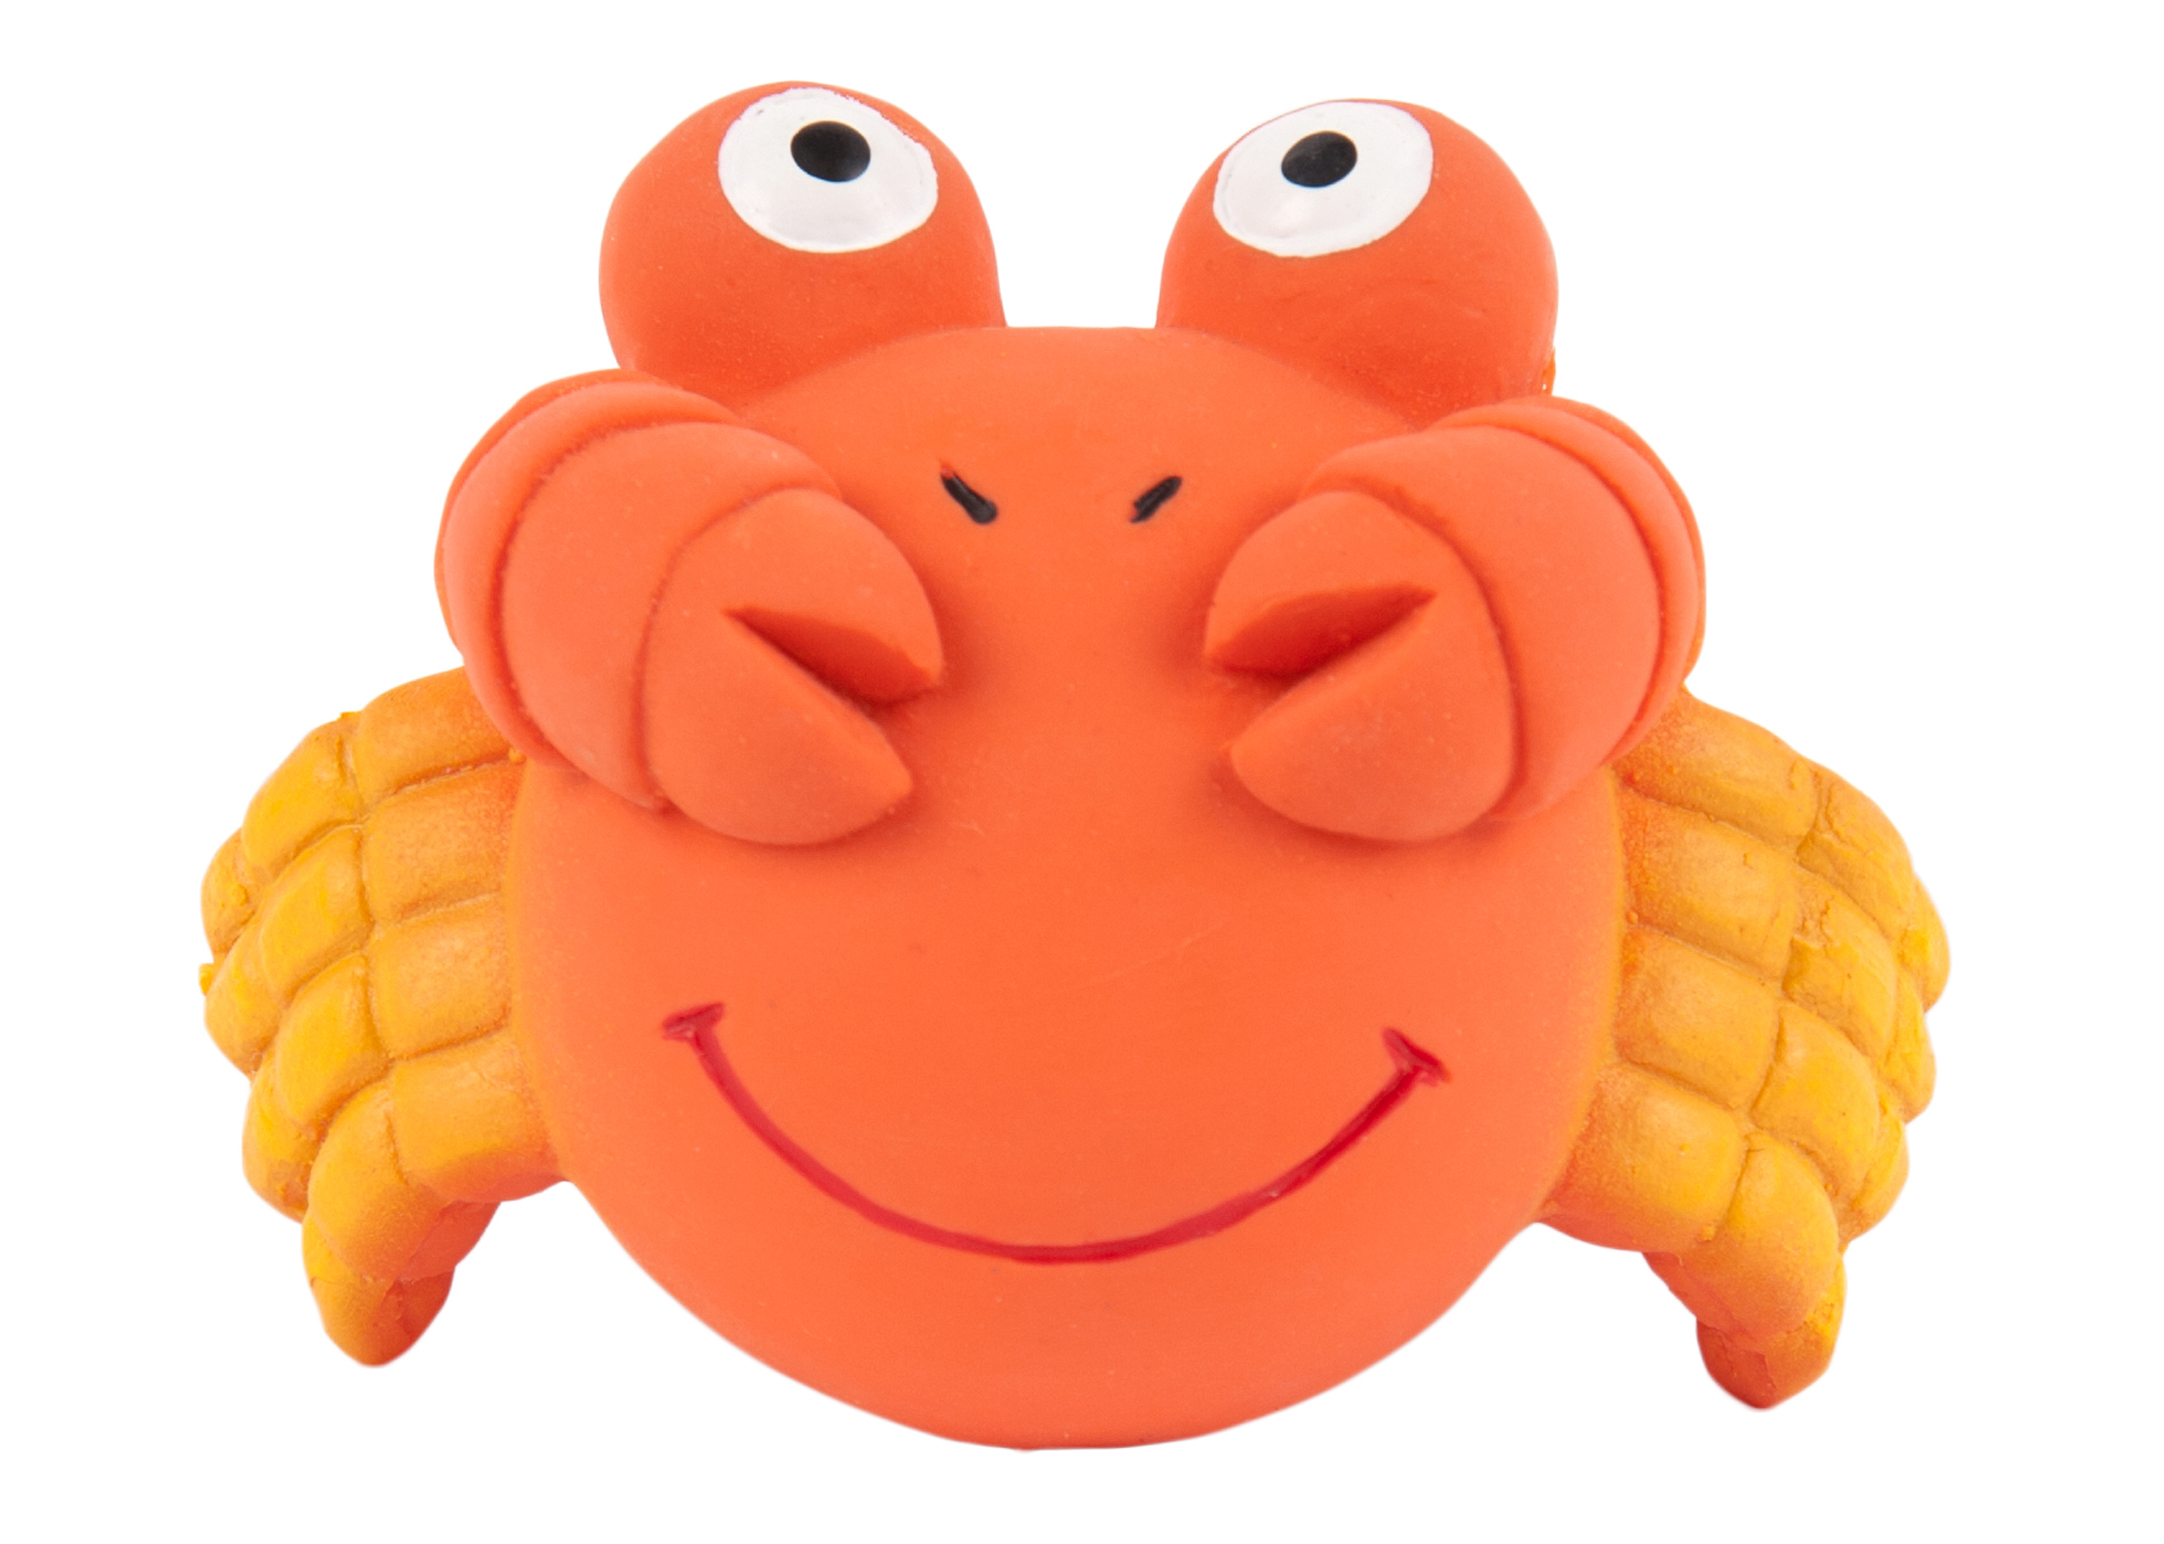 Chuckle City Squeaky Latex Crab 8cm Orange Toys